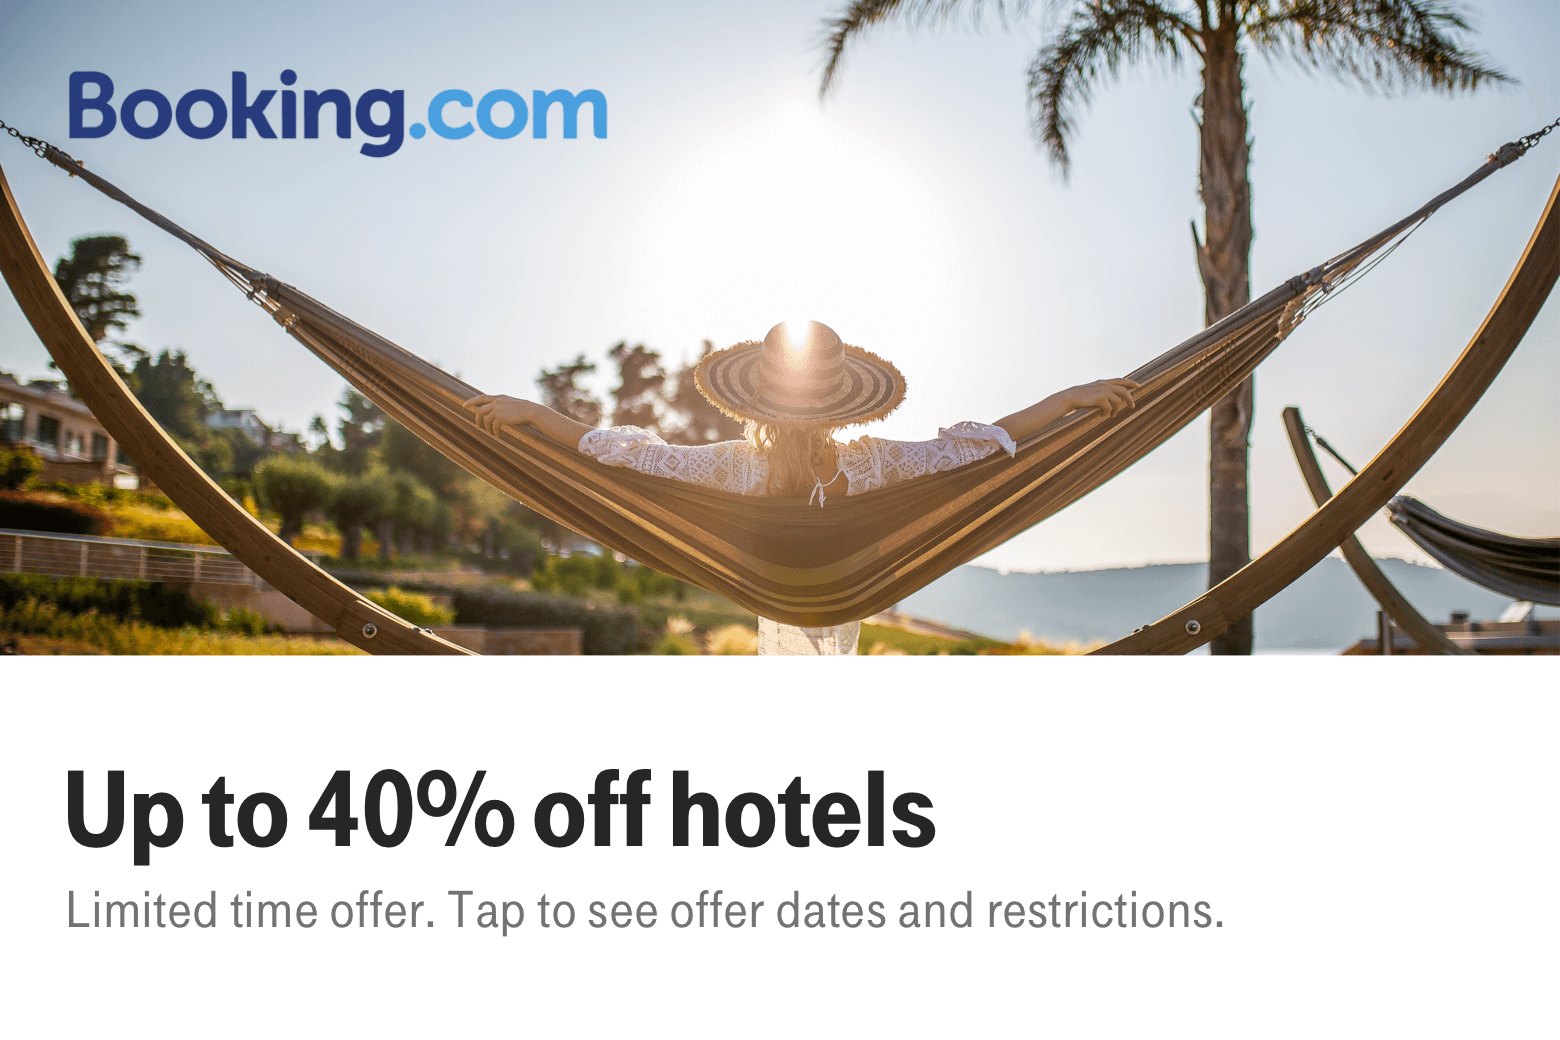 Booking. Up to 40% off hotels. Limited time offer. Tap to see offer dates and restrictions.